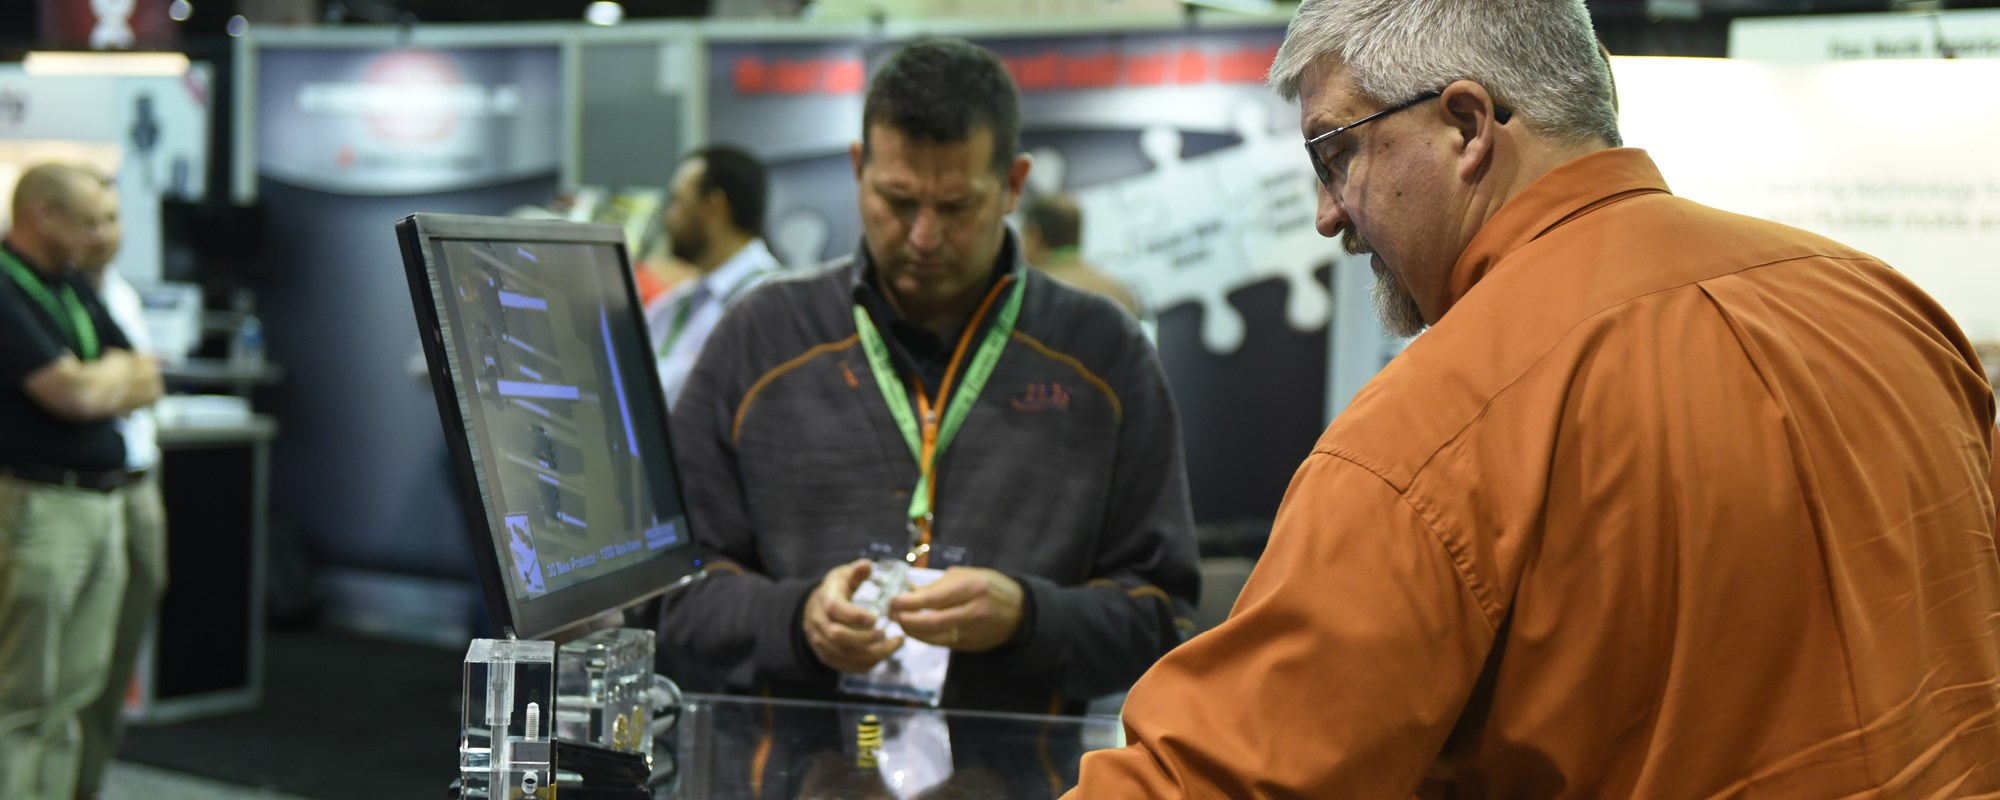 Two gentlemen discussing technology on the Amerimold show floor.